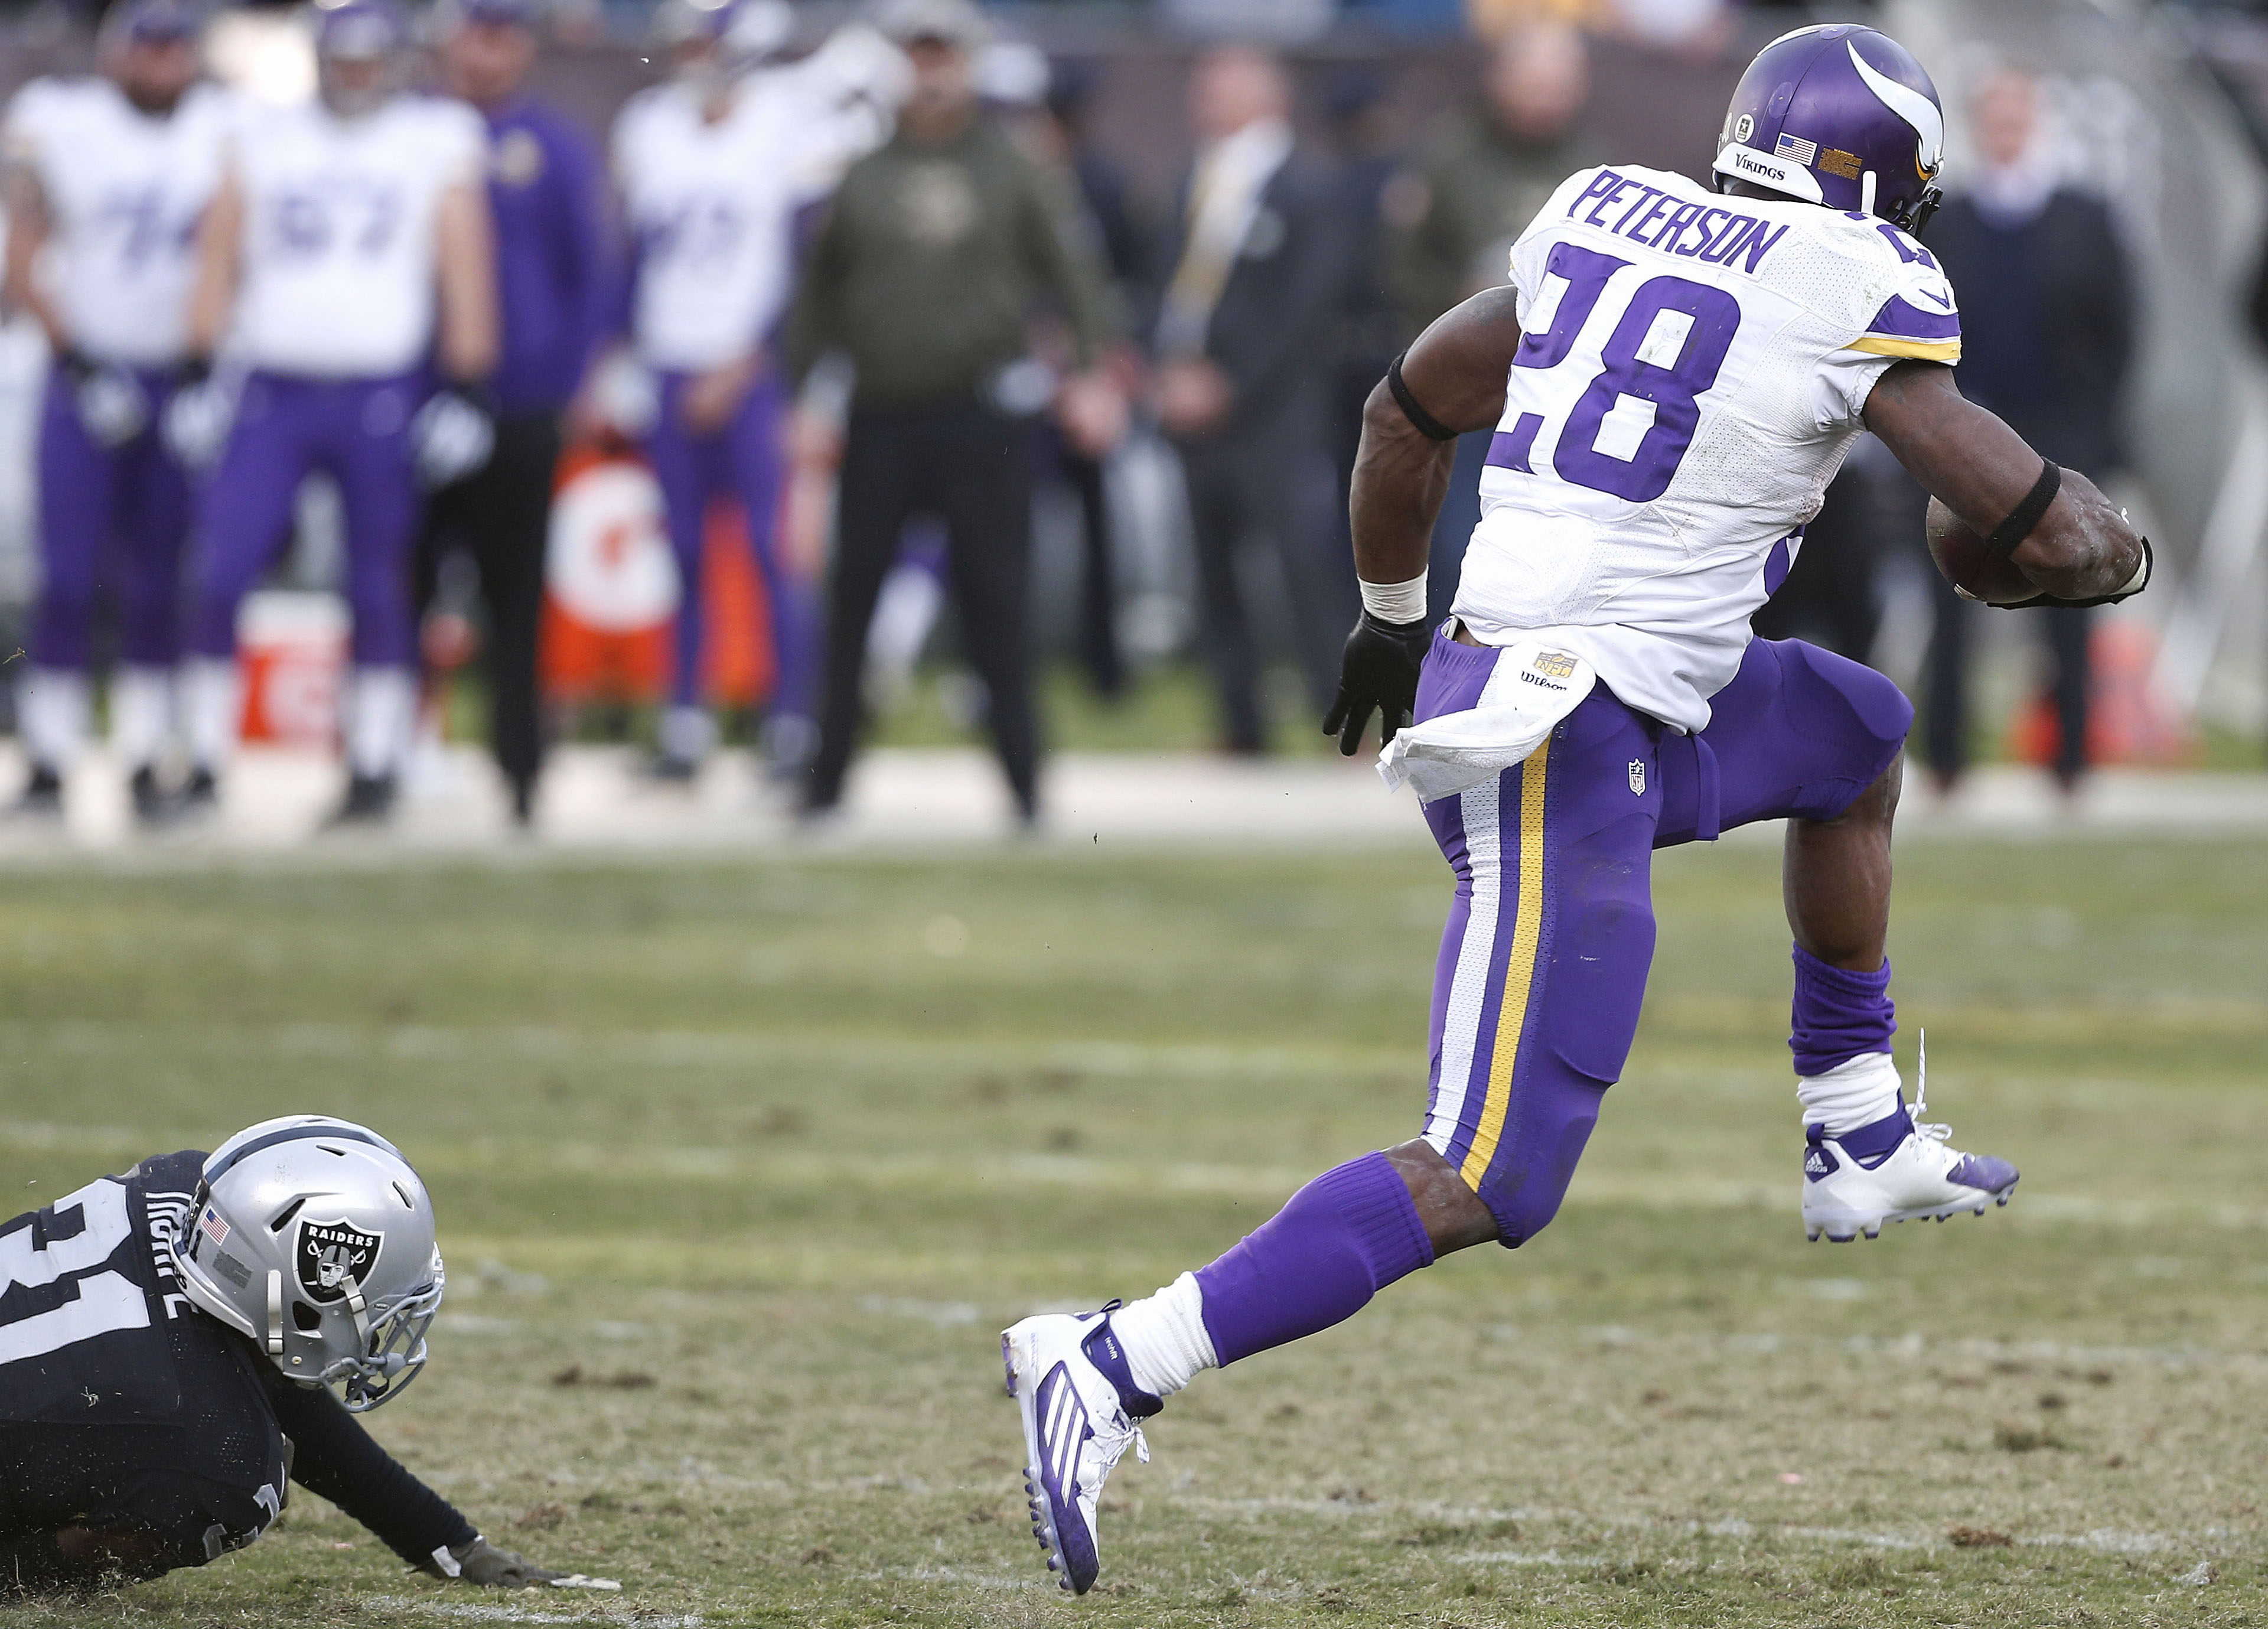 Minnesota Vikings running back Adrian Peterson (28) runs past Oakland Raiders defensive back Neiko Thorpe (31) for an 80-yard touchdown run during the second half of an NFL football game in Oakland, Calif., Sunday, Nov. 15, 2015. (AP Photo/Beck Diefenbach